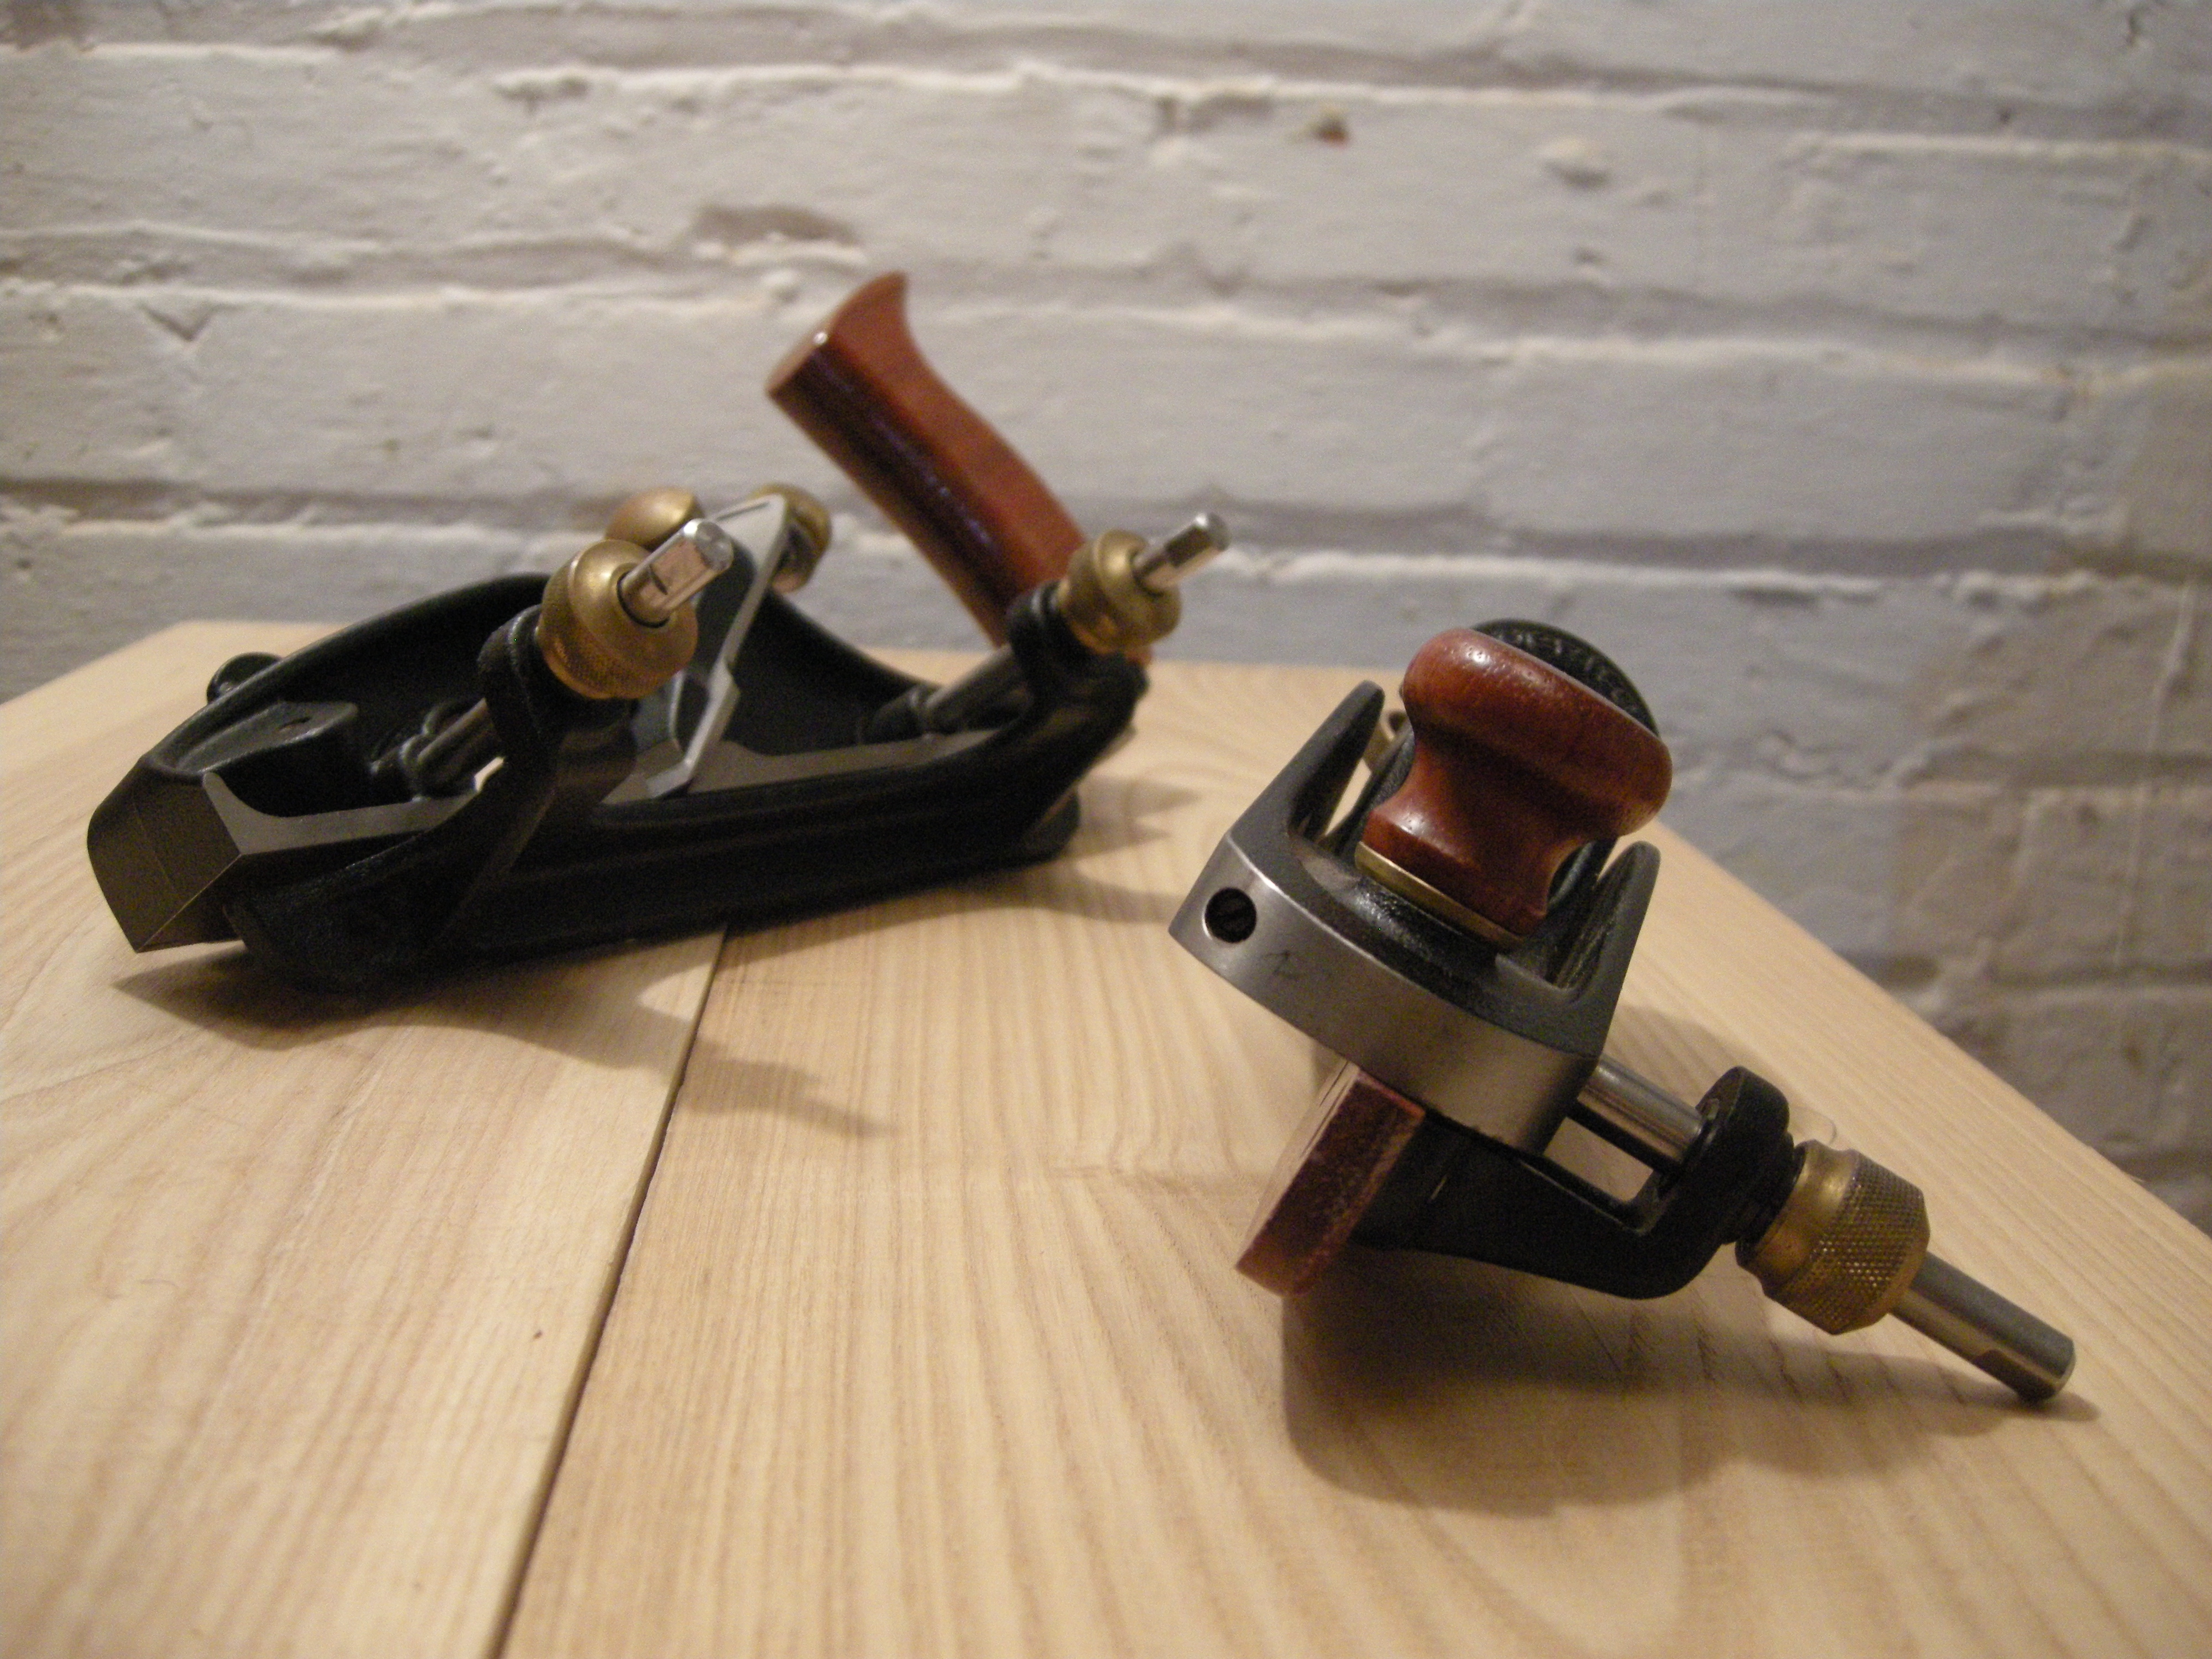 Veritas Skew Block plane and the larger, Skew Rabbet plane. (back left)